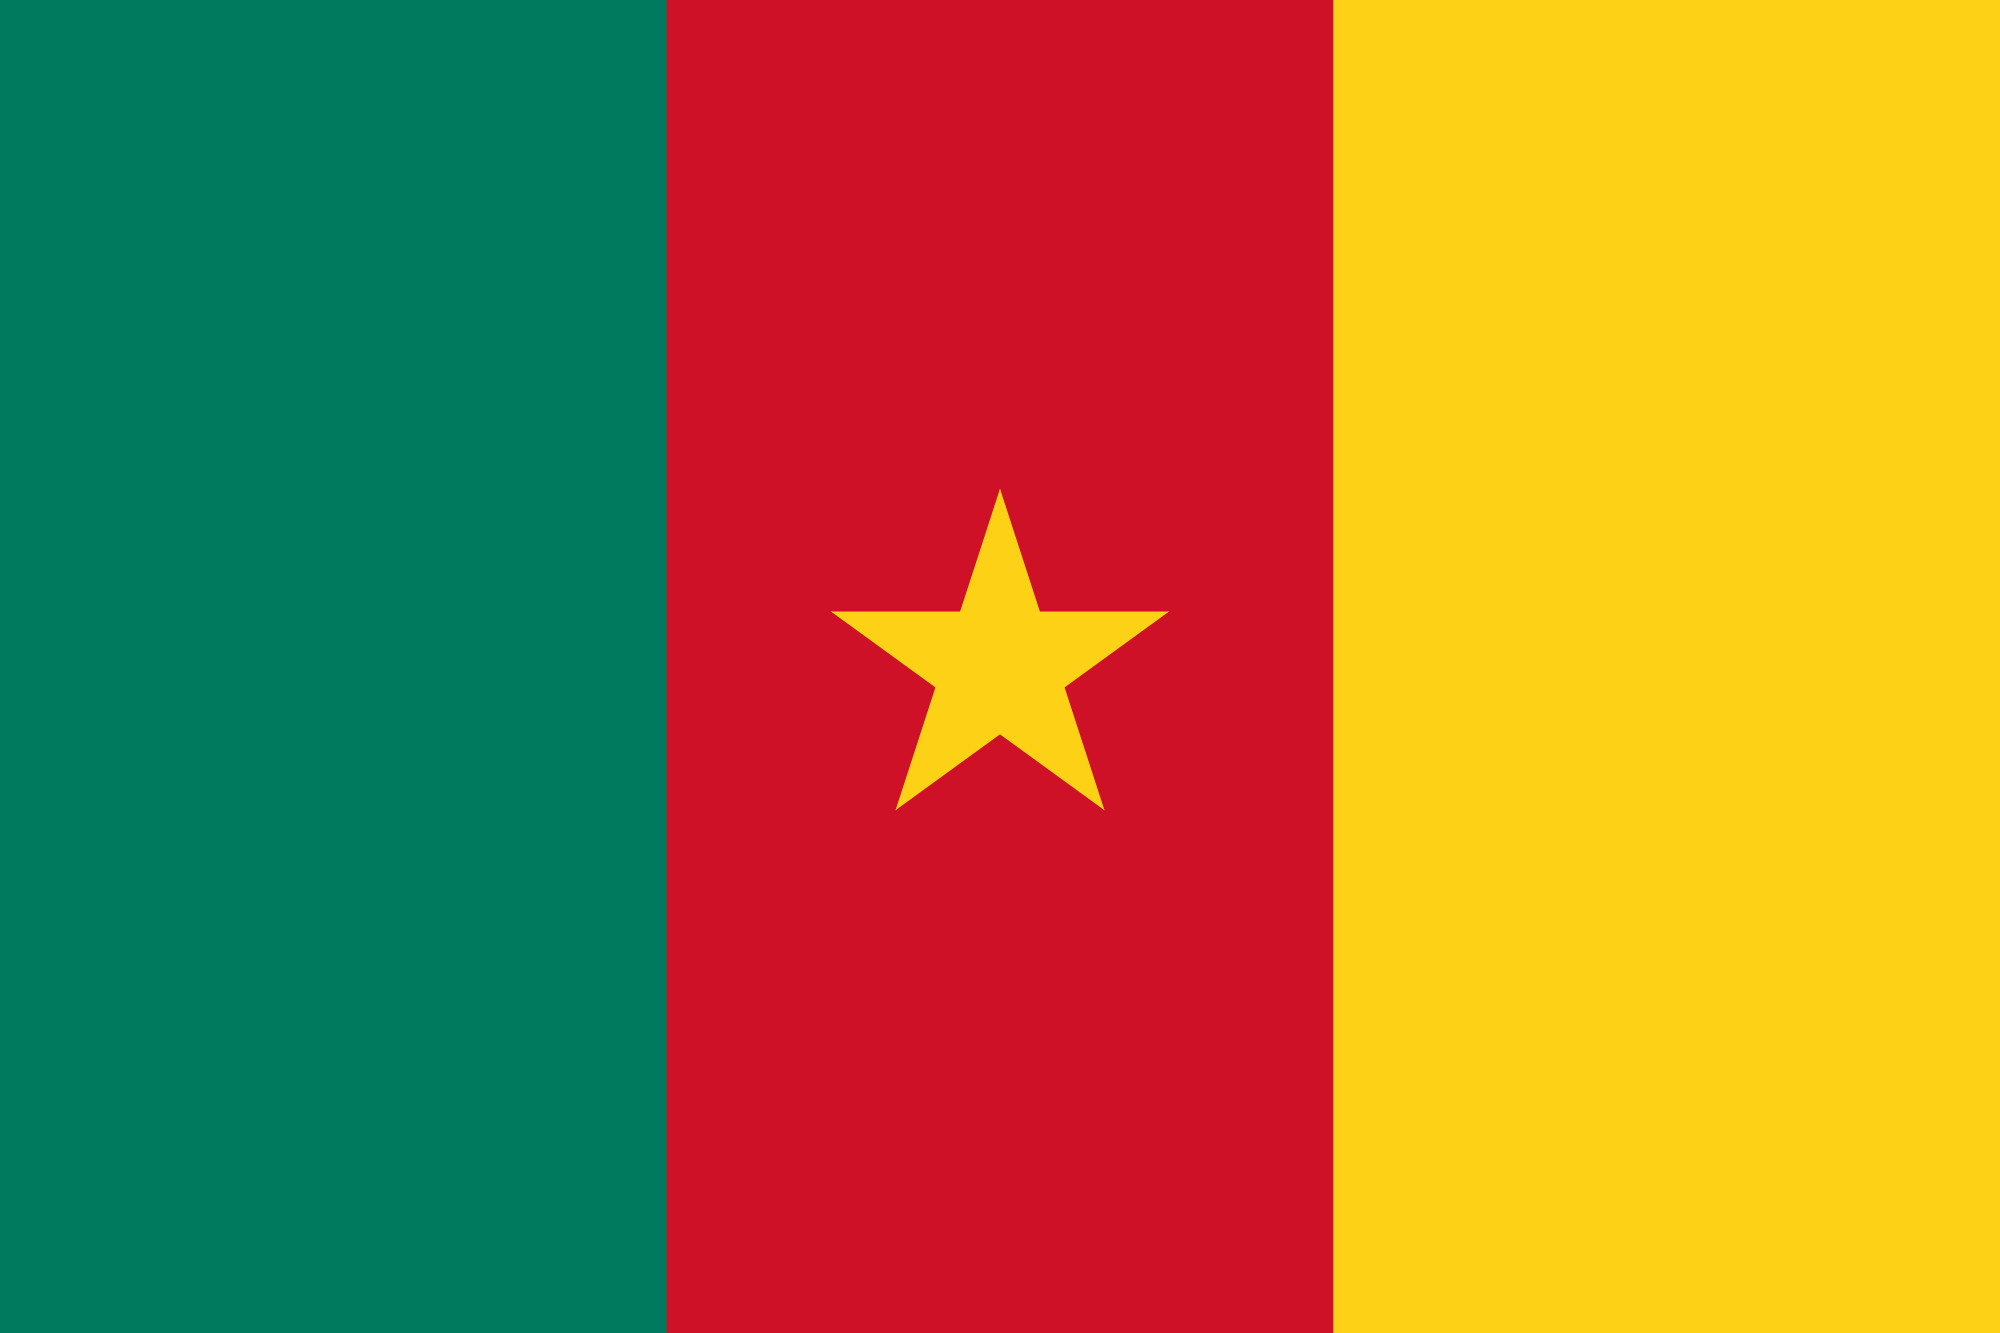 Flag of Cameroon Wikipedia